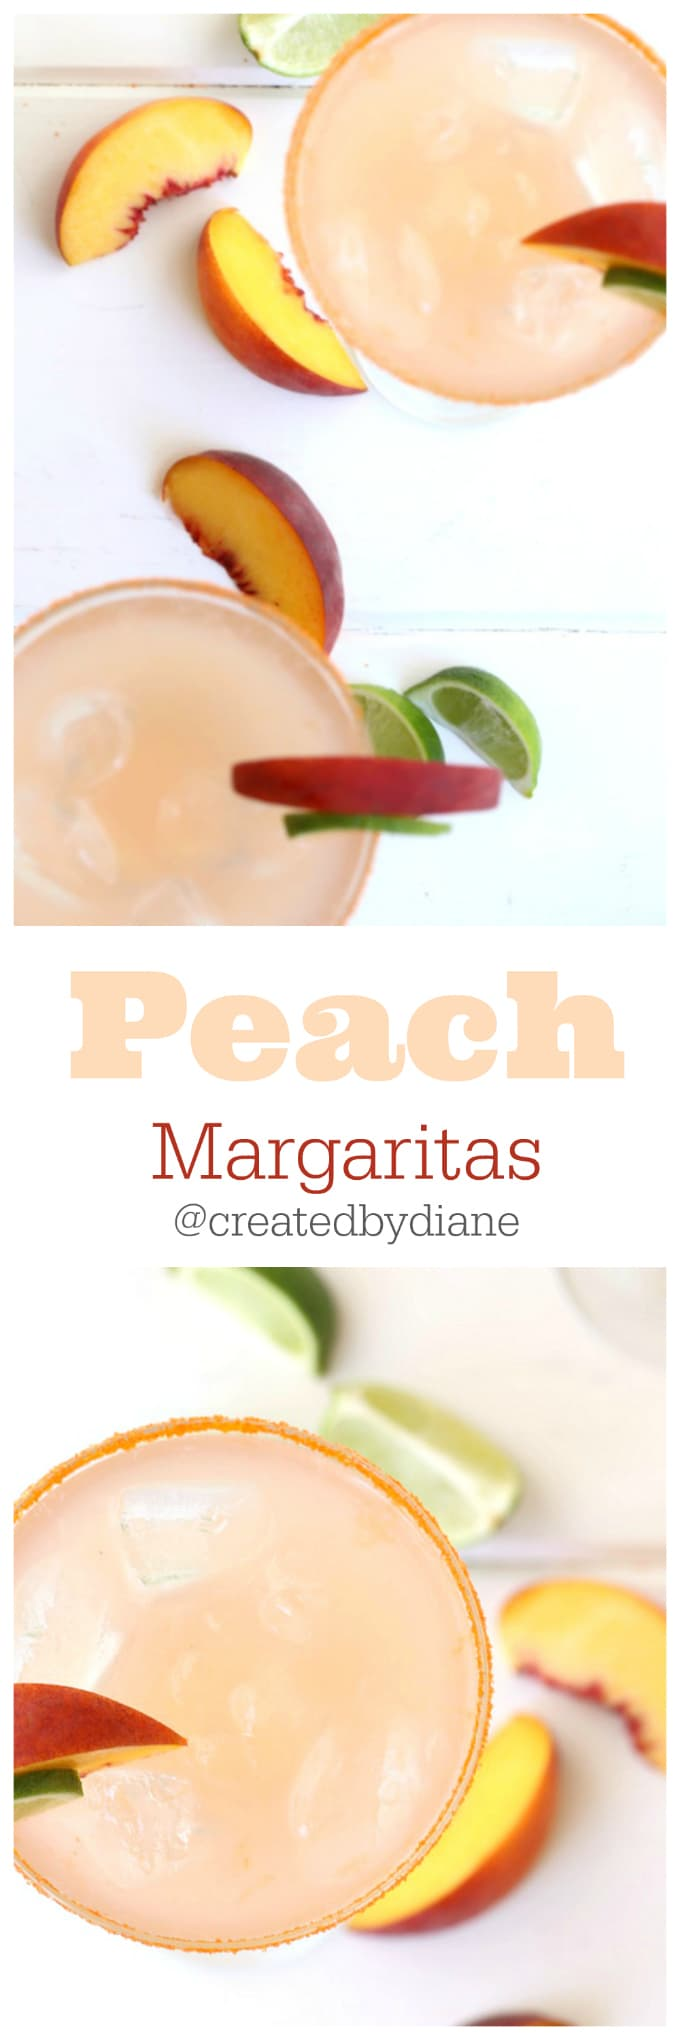 natural peach flavored margaritas @createdbydiane